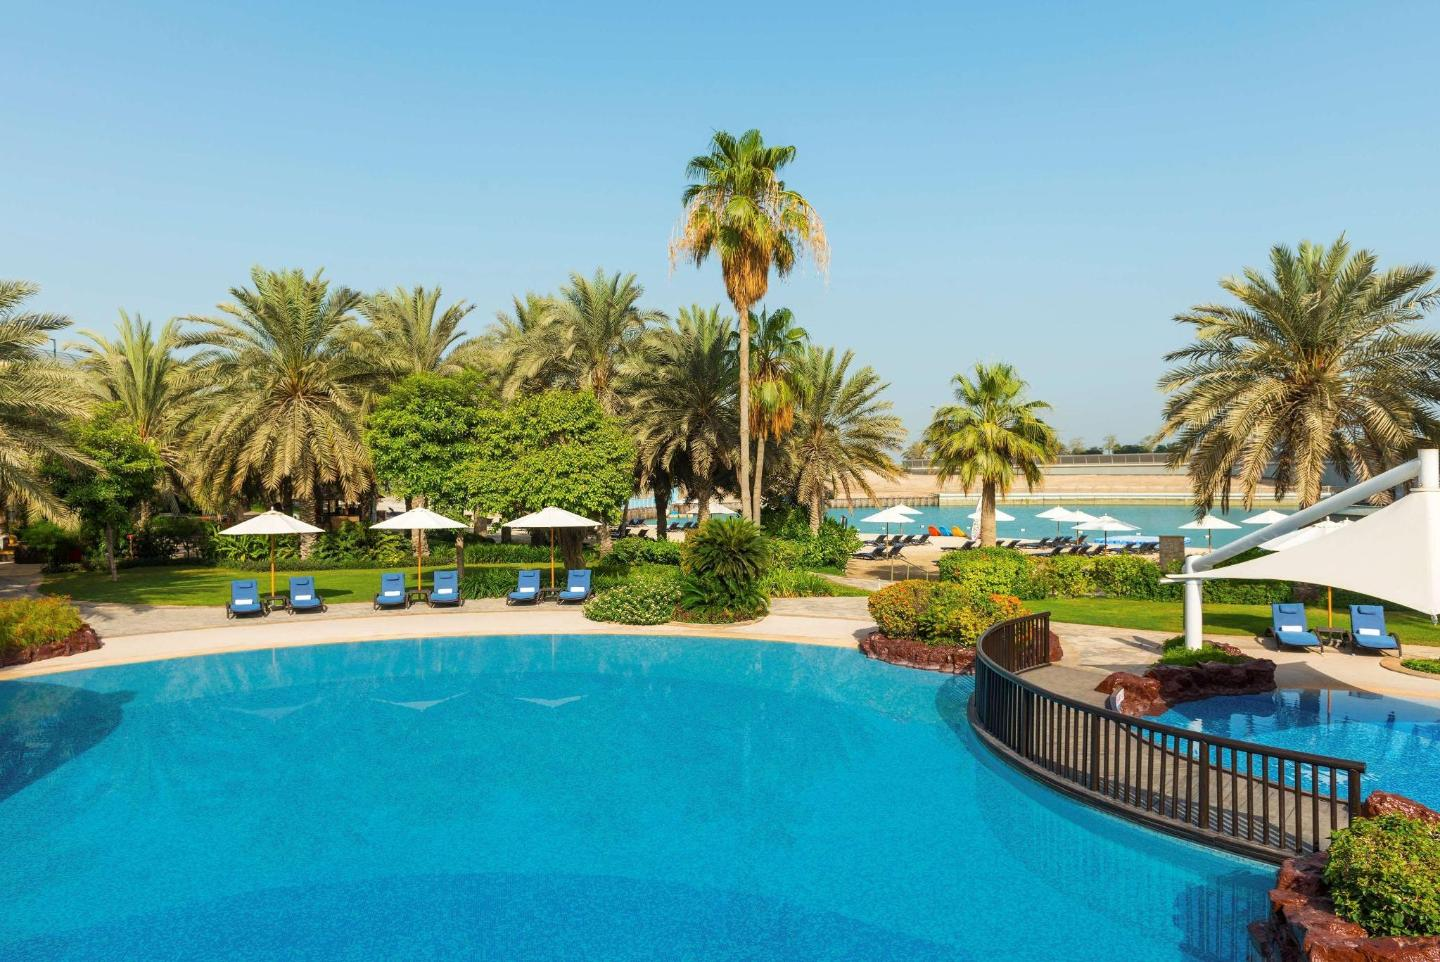 The 10 Best Hotels With Pools In Abu Dhabi Uae Booking Com